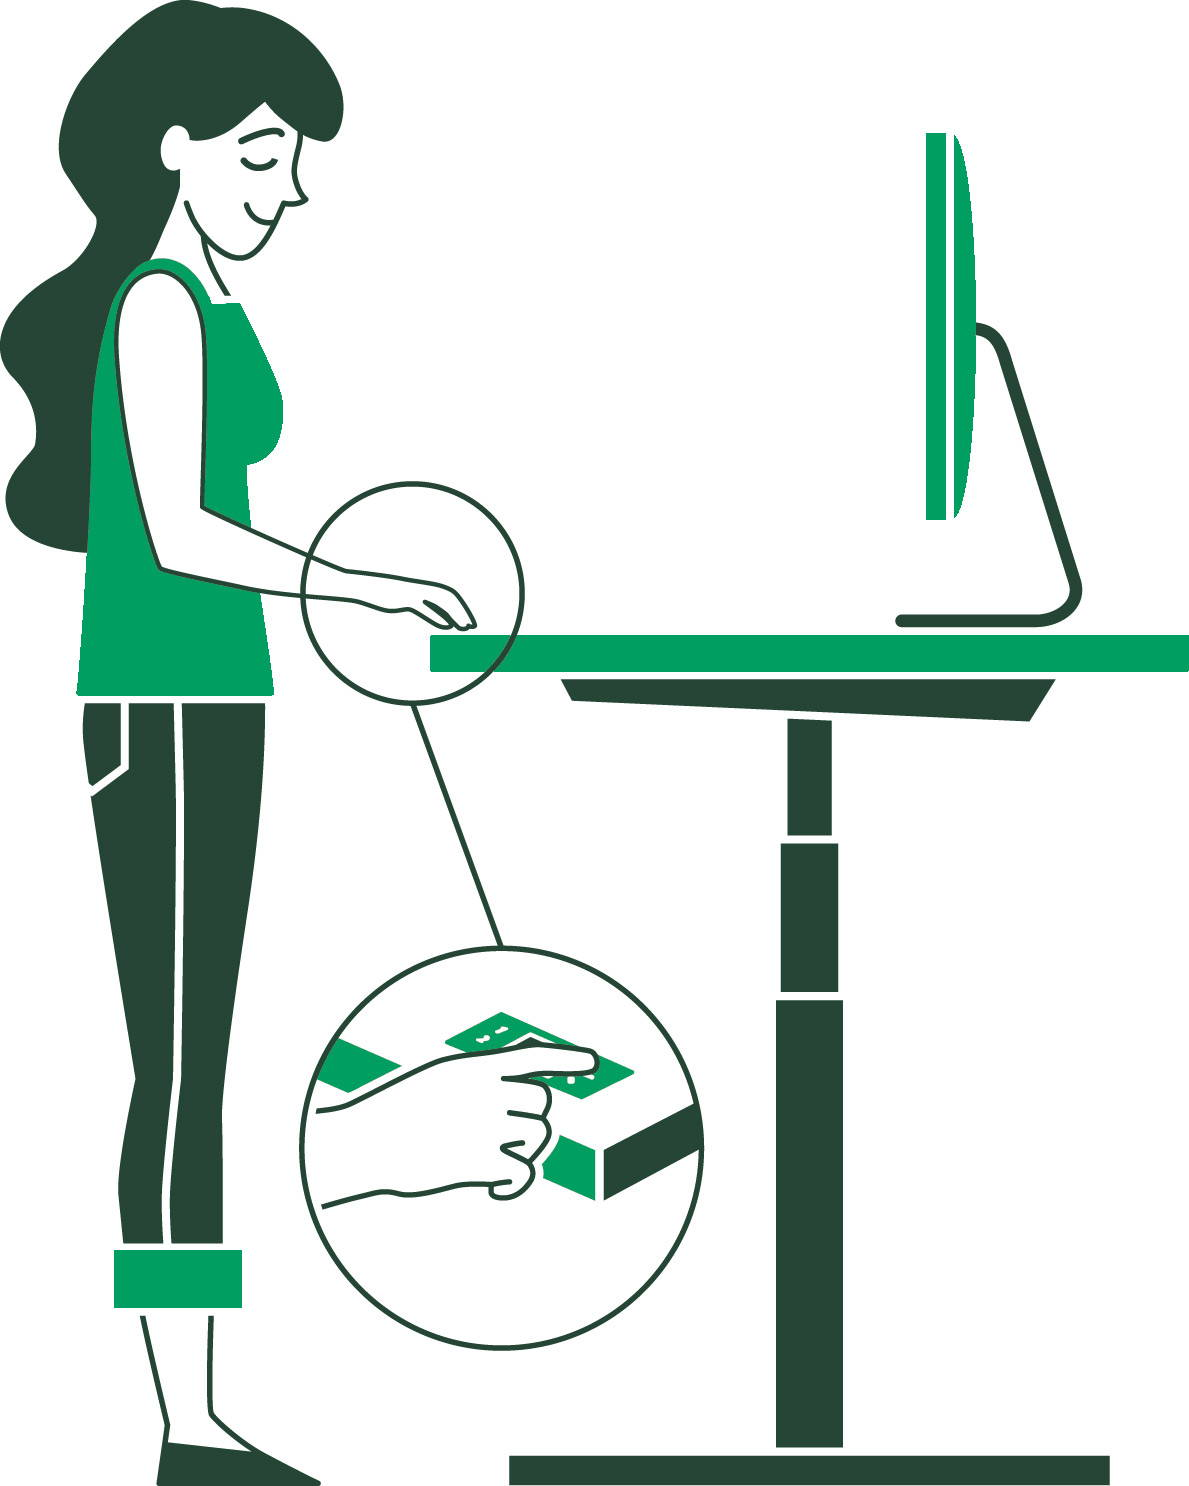 Adjust your sit-stand desk - ergonofis